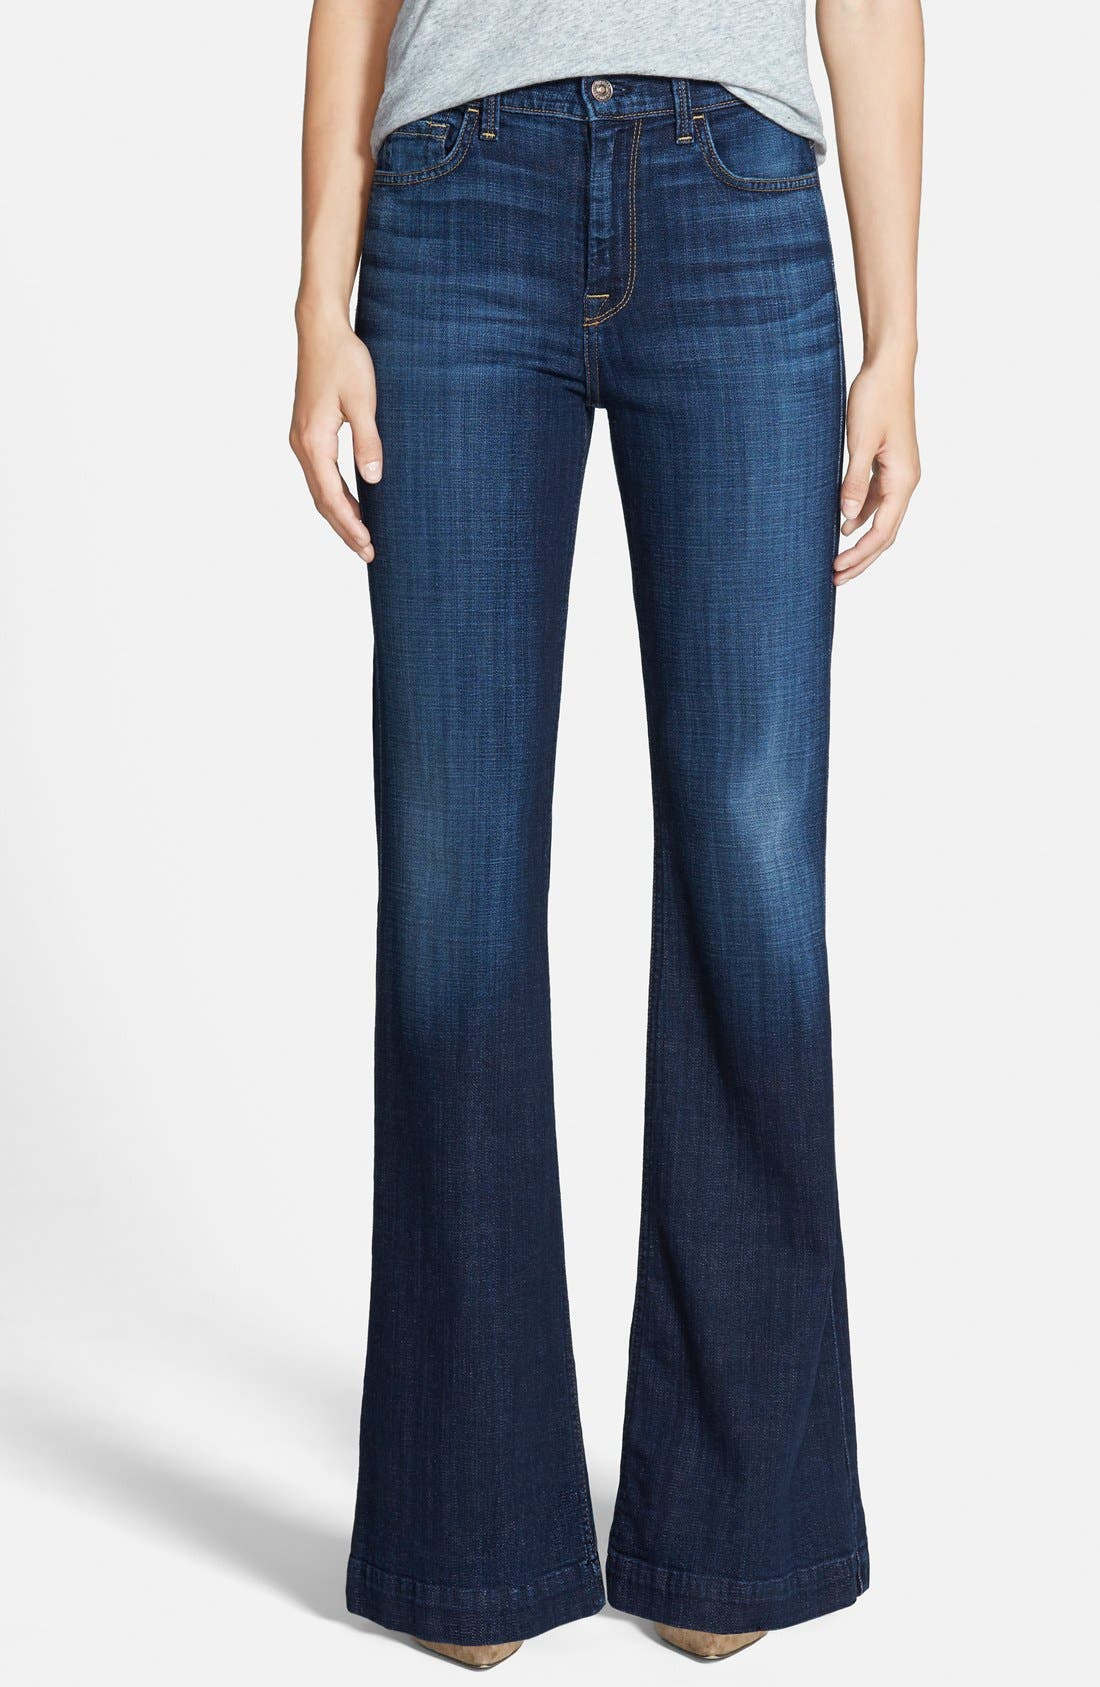 7 FOR ALL MANKIND<SUP>®</SUP>, 'Ginger' High Rise Flare Jeans, Main thumbnail 1, color, 400